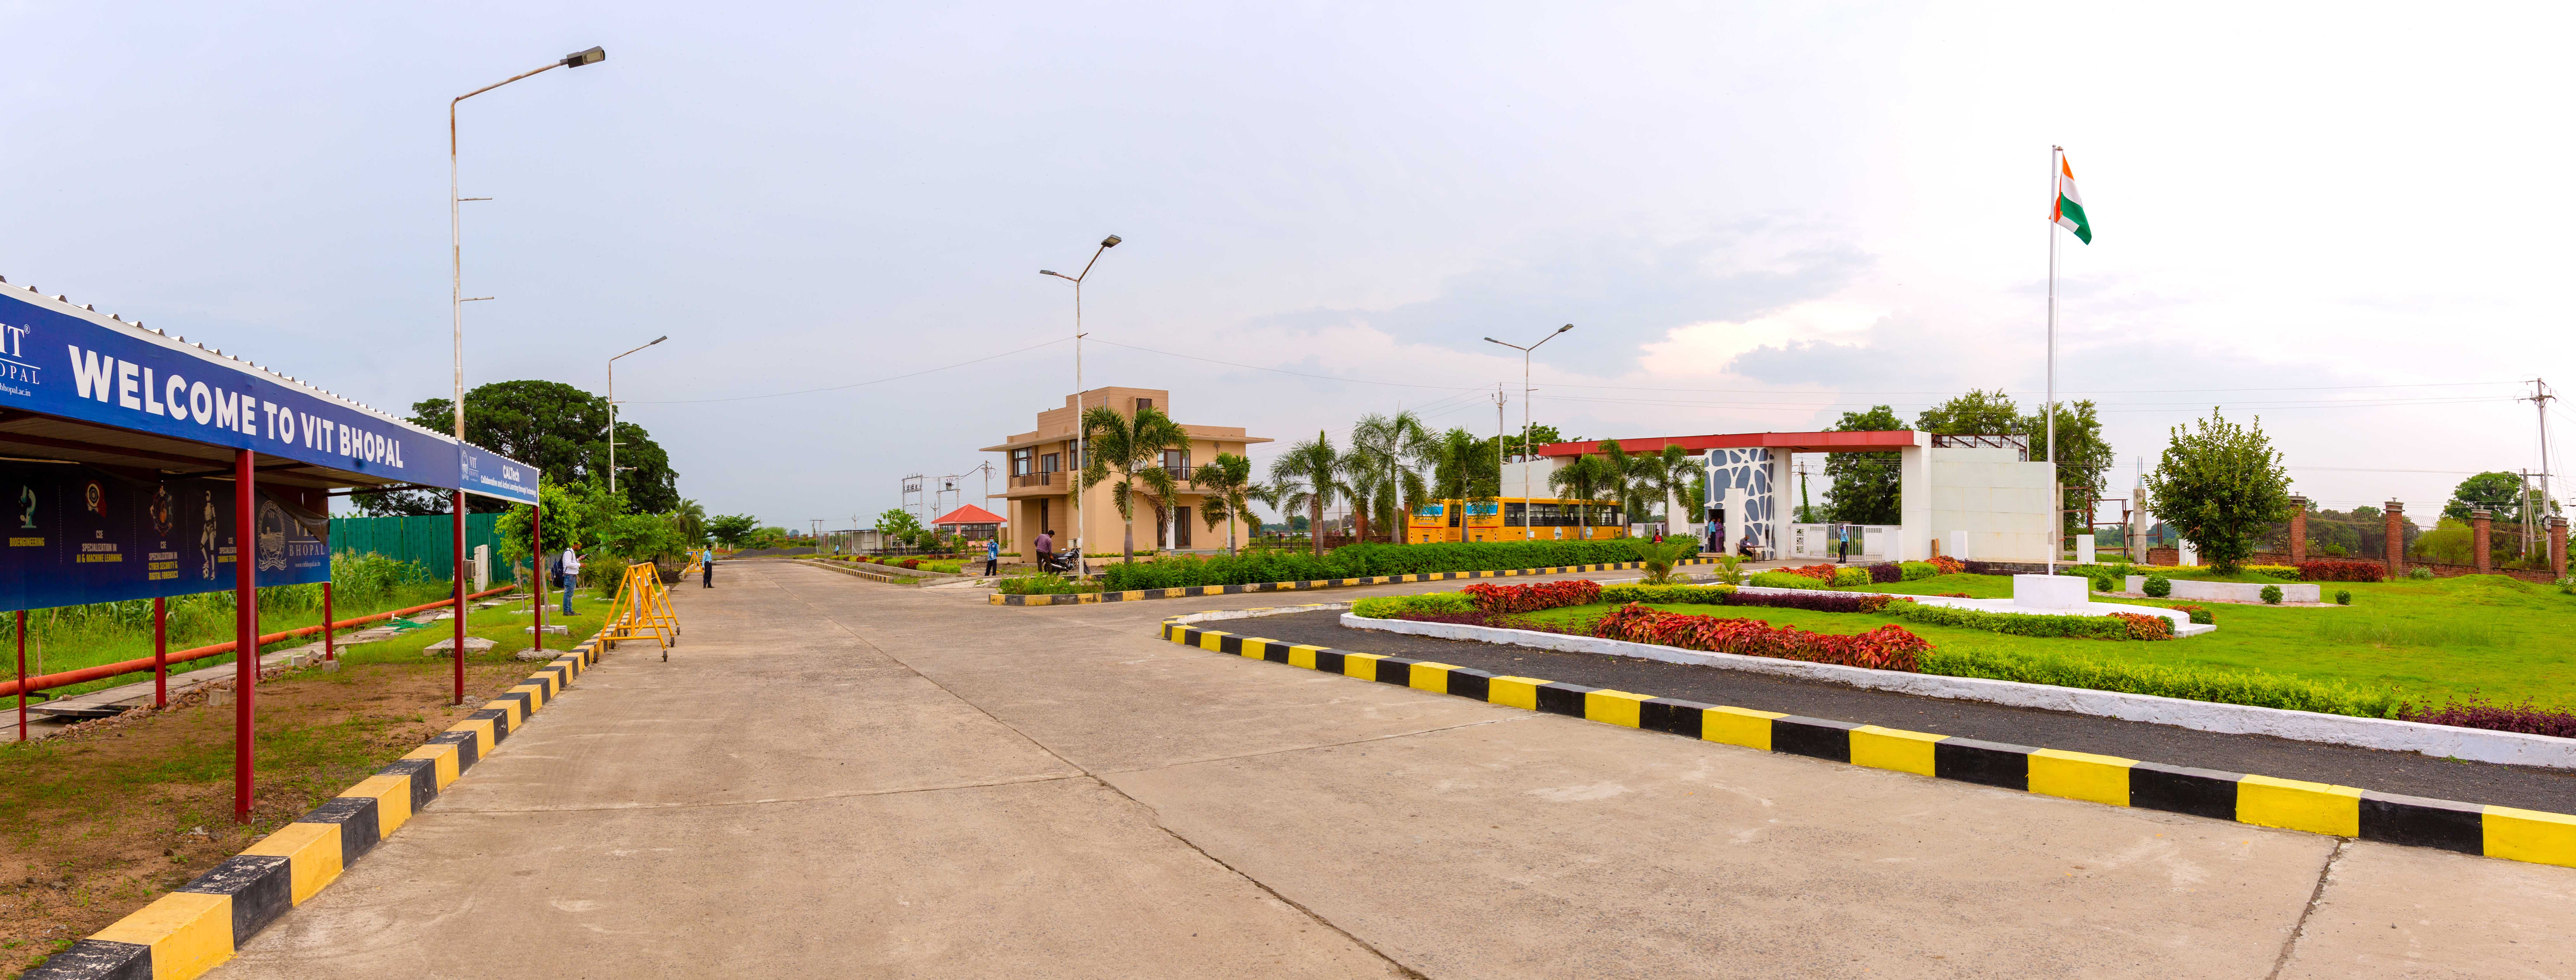 VIT Bhopal  - Best University in Central India -  entrance-view-inside-2